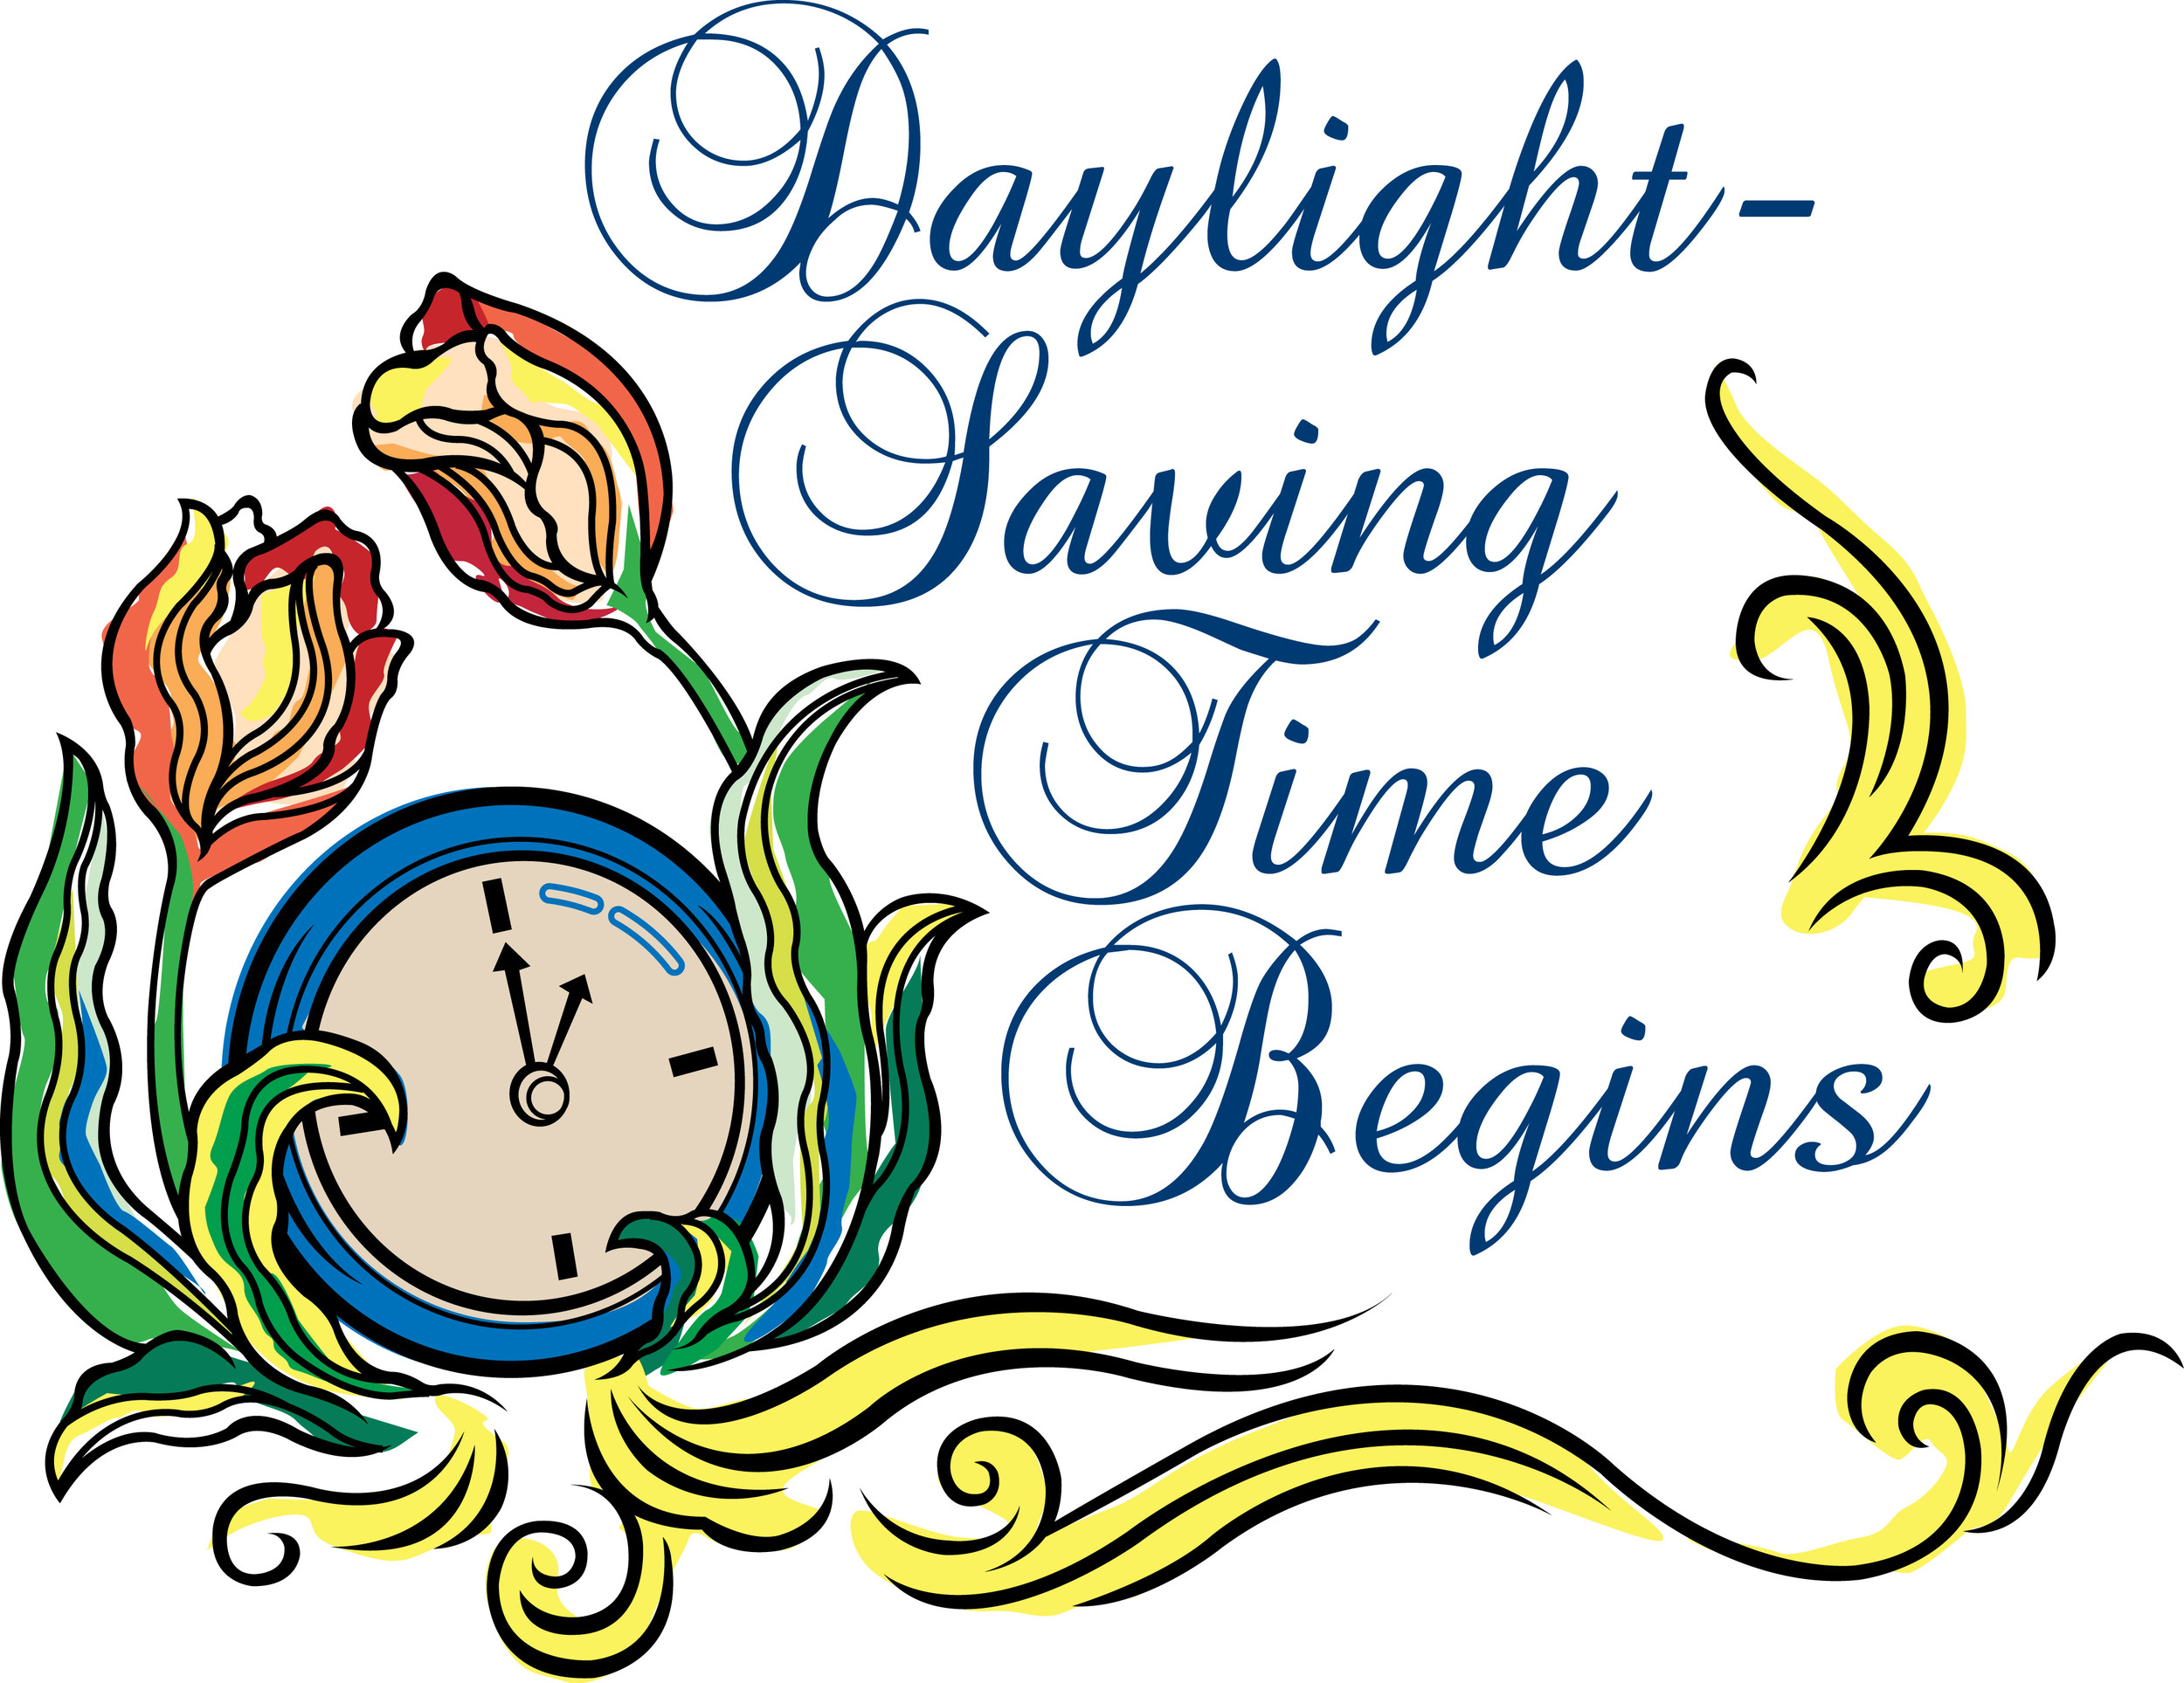 Daylight saving time. Are you for or against it?